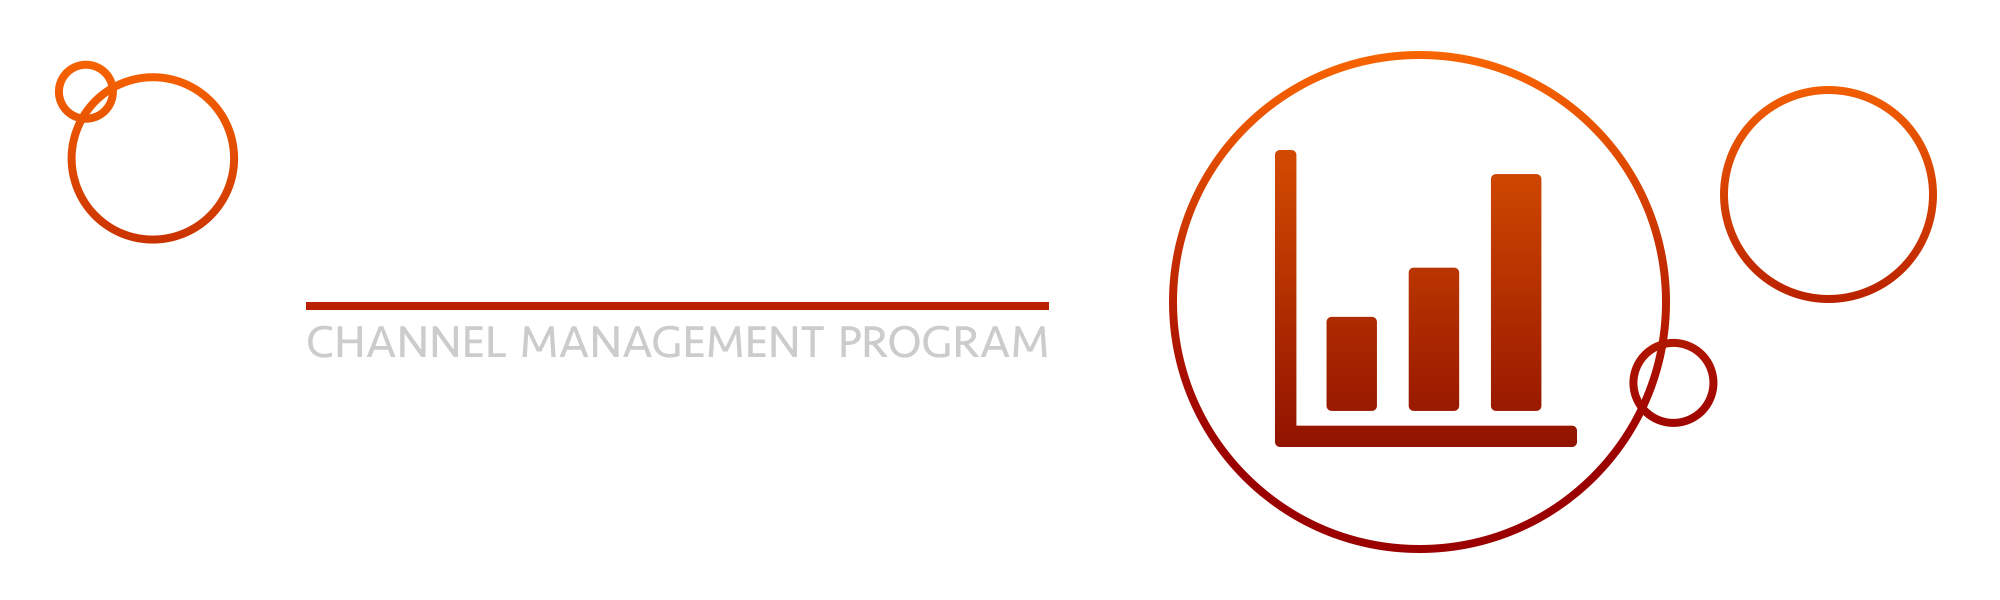 Channel Management Program: Logistics, Reporting, and Analytics